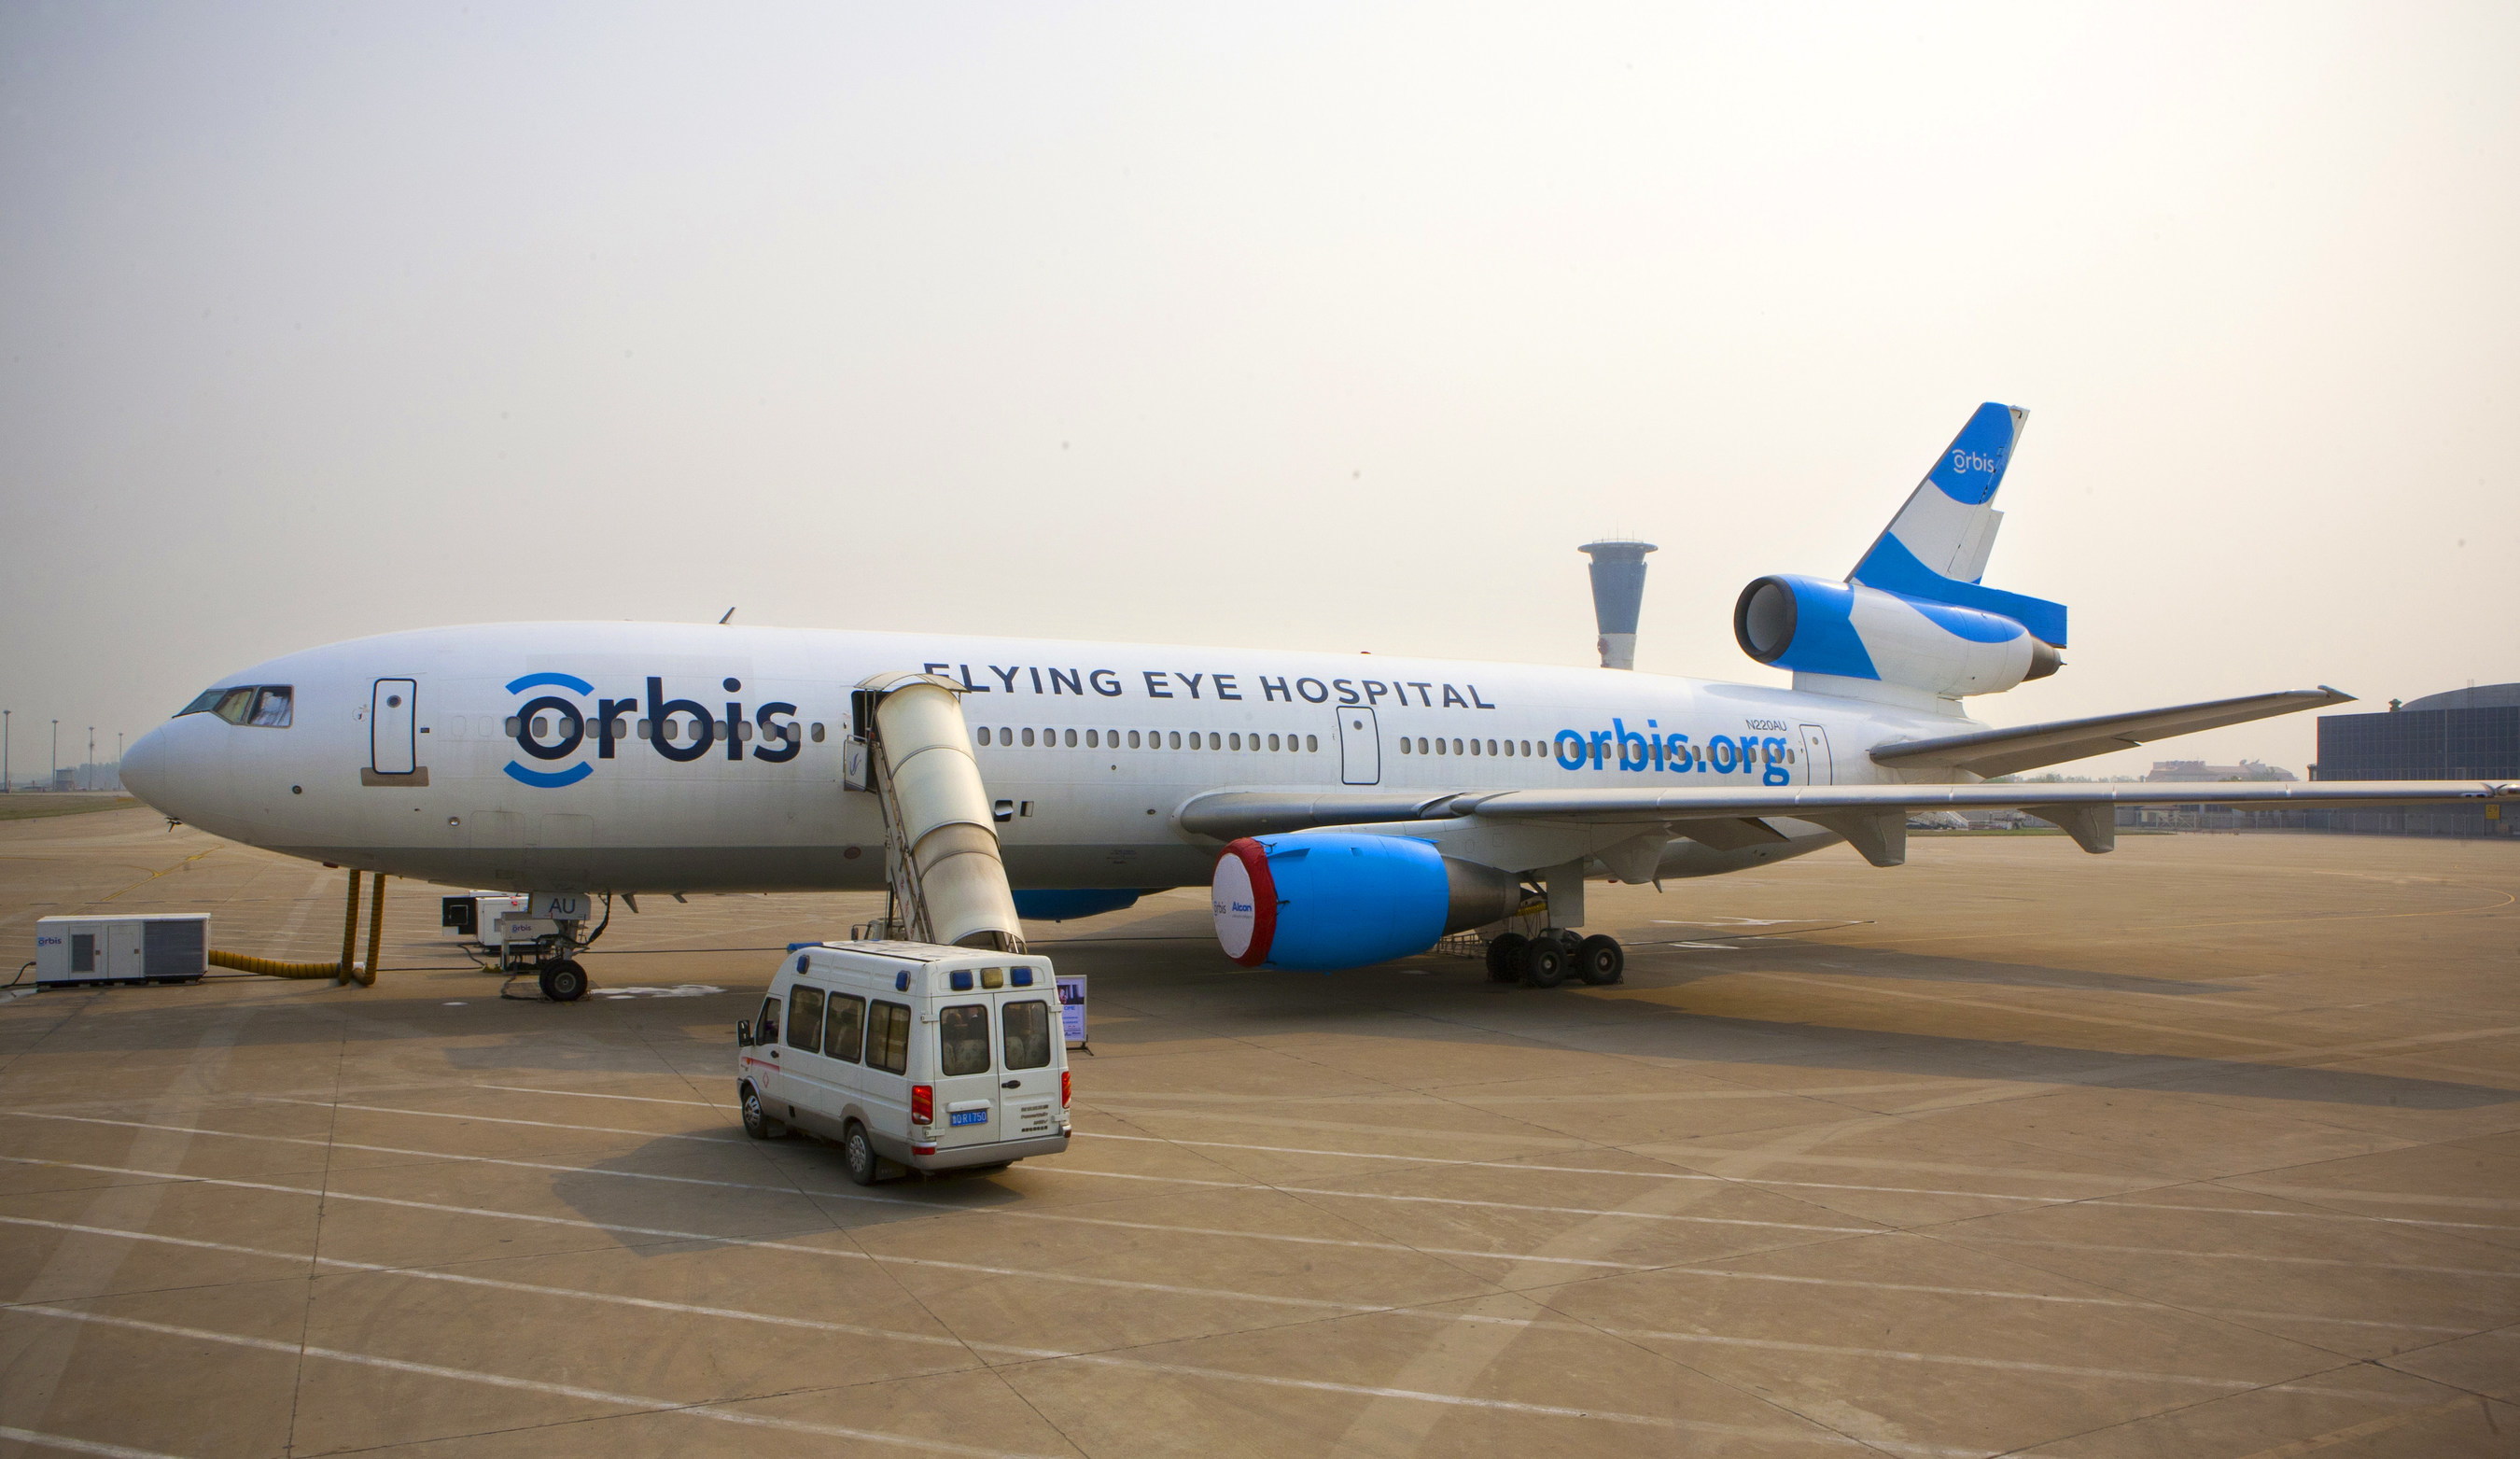 Orbis operates the Flying Eye Hospital (FEH), a fully equipped mobile teaching hospital. On the outside, the plane is like most other aircraft. Inside, it's like no other-it hosts an ophthalmic hospital and teaching facility right on board. Learn more: orbis.org (photo: Geoff Bugbee/Orbis).